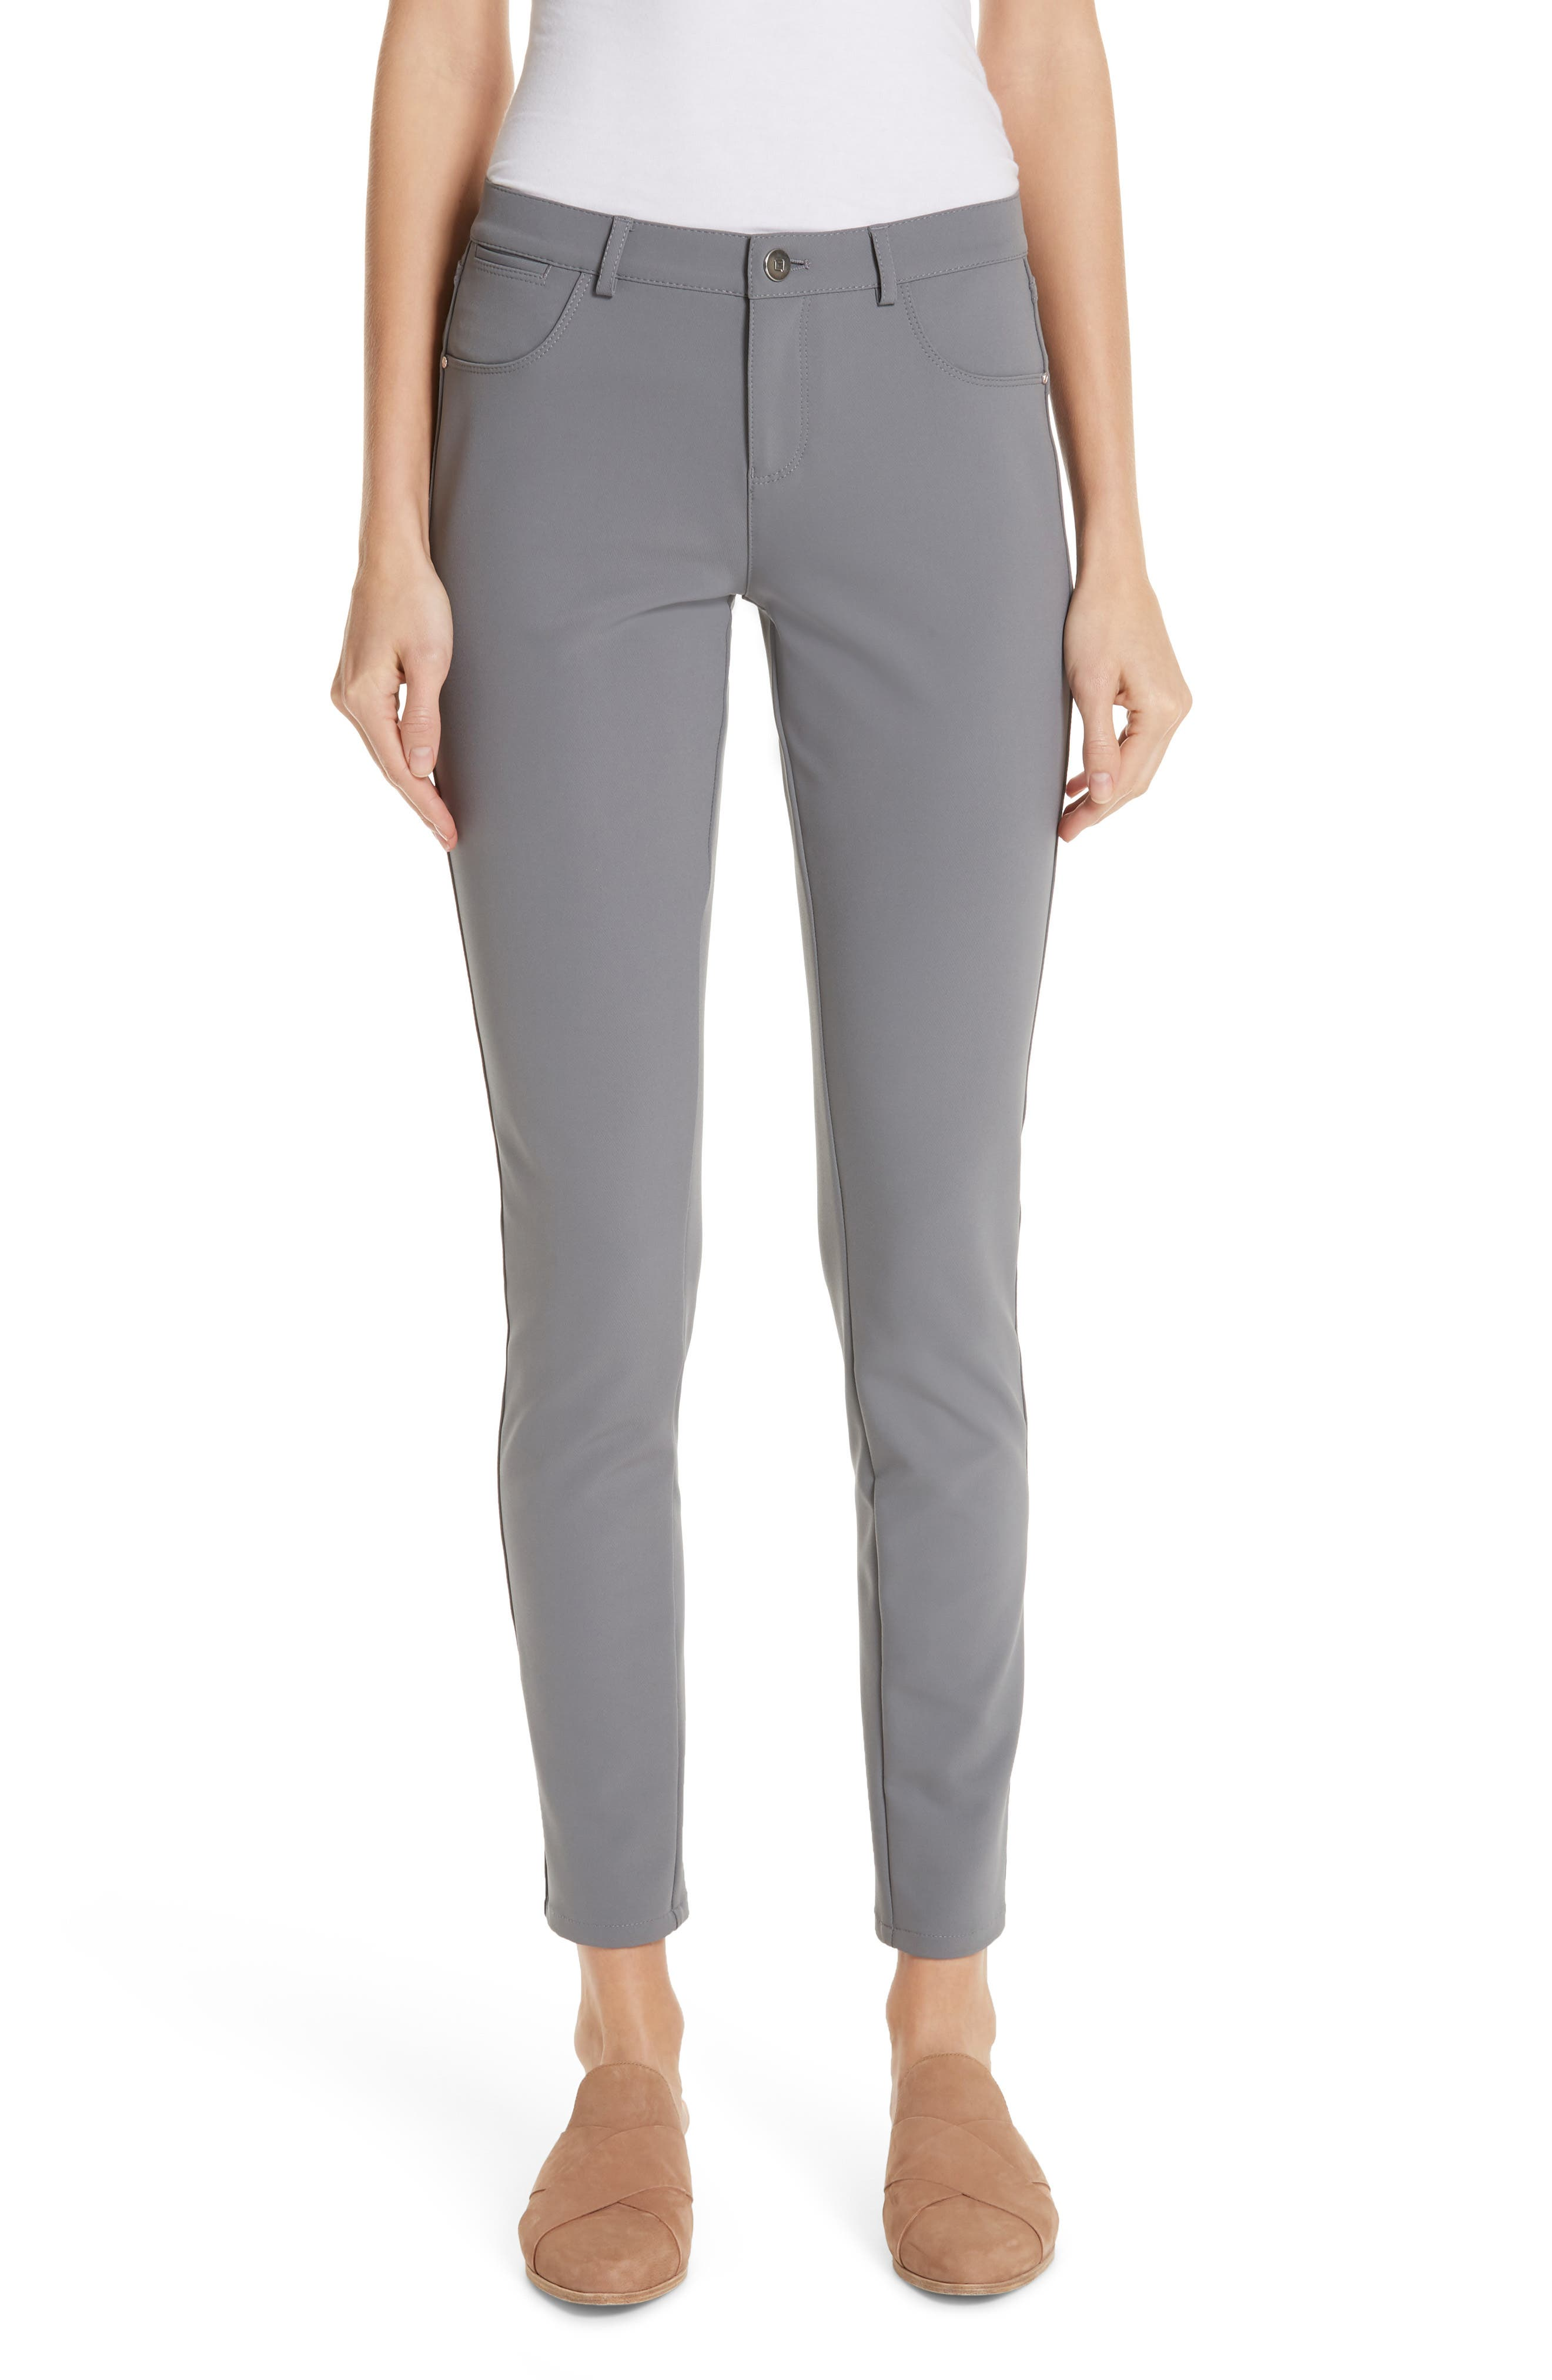 LAFAYETTE 148 NEW YORK,                             Mercer Acclaimed Stretch Skinny Pants,                             Main thumbnail 1, color,                             CINDER